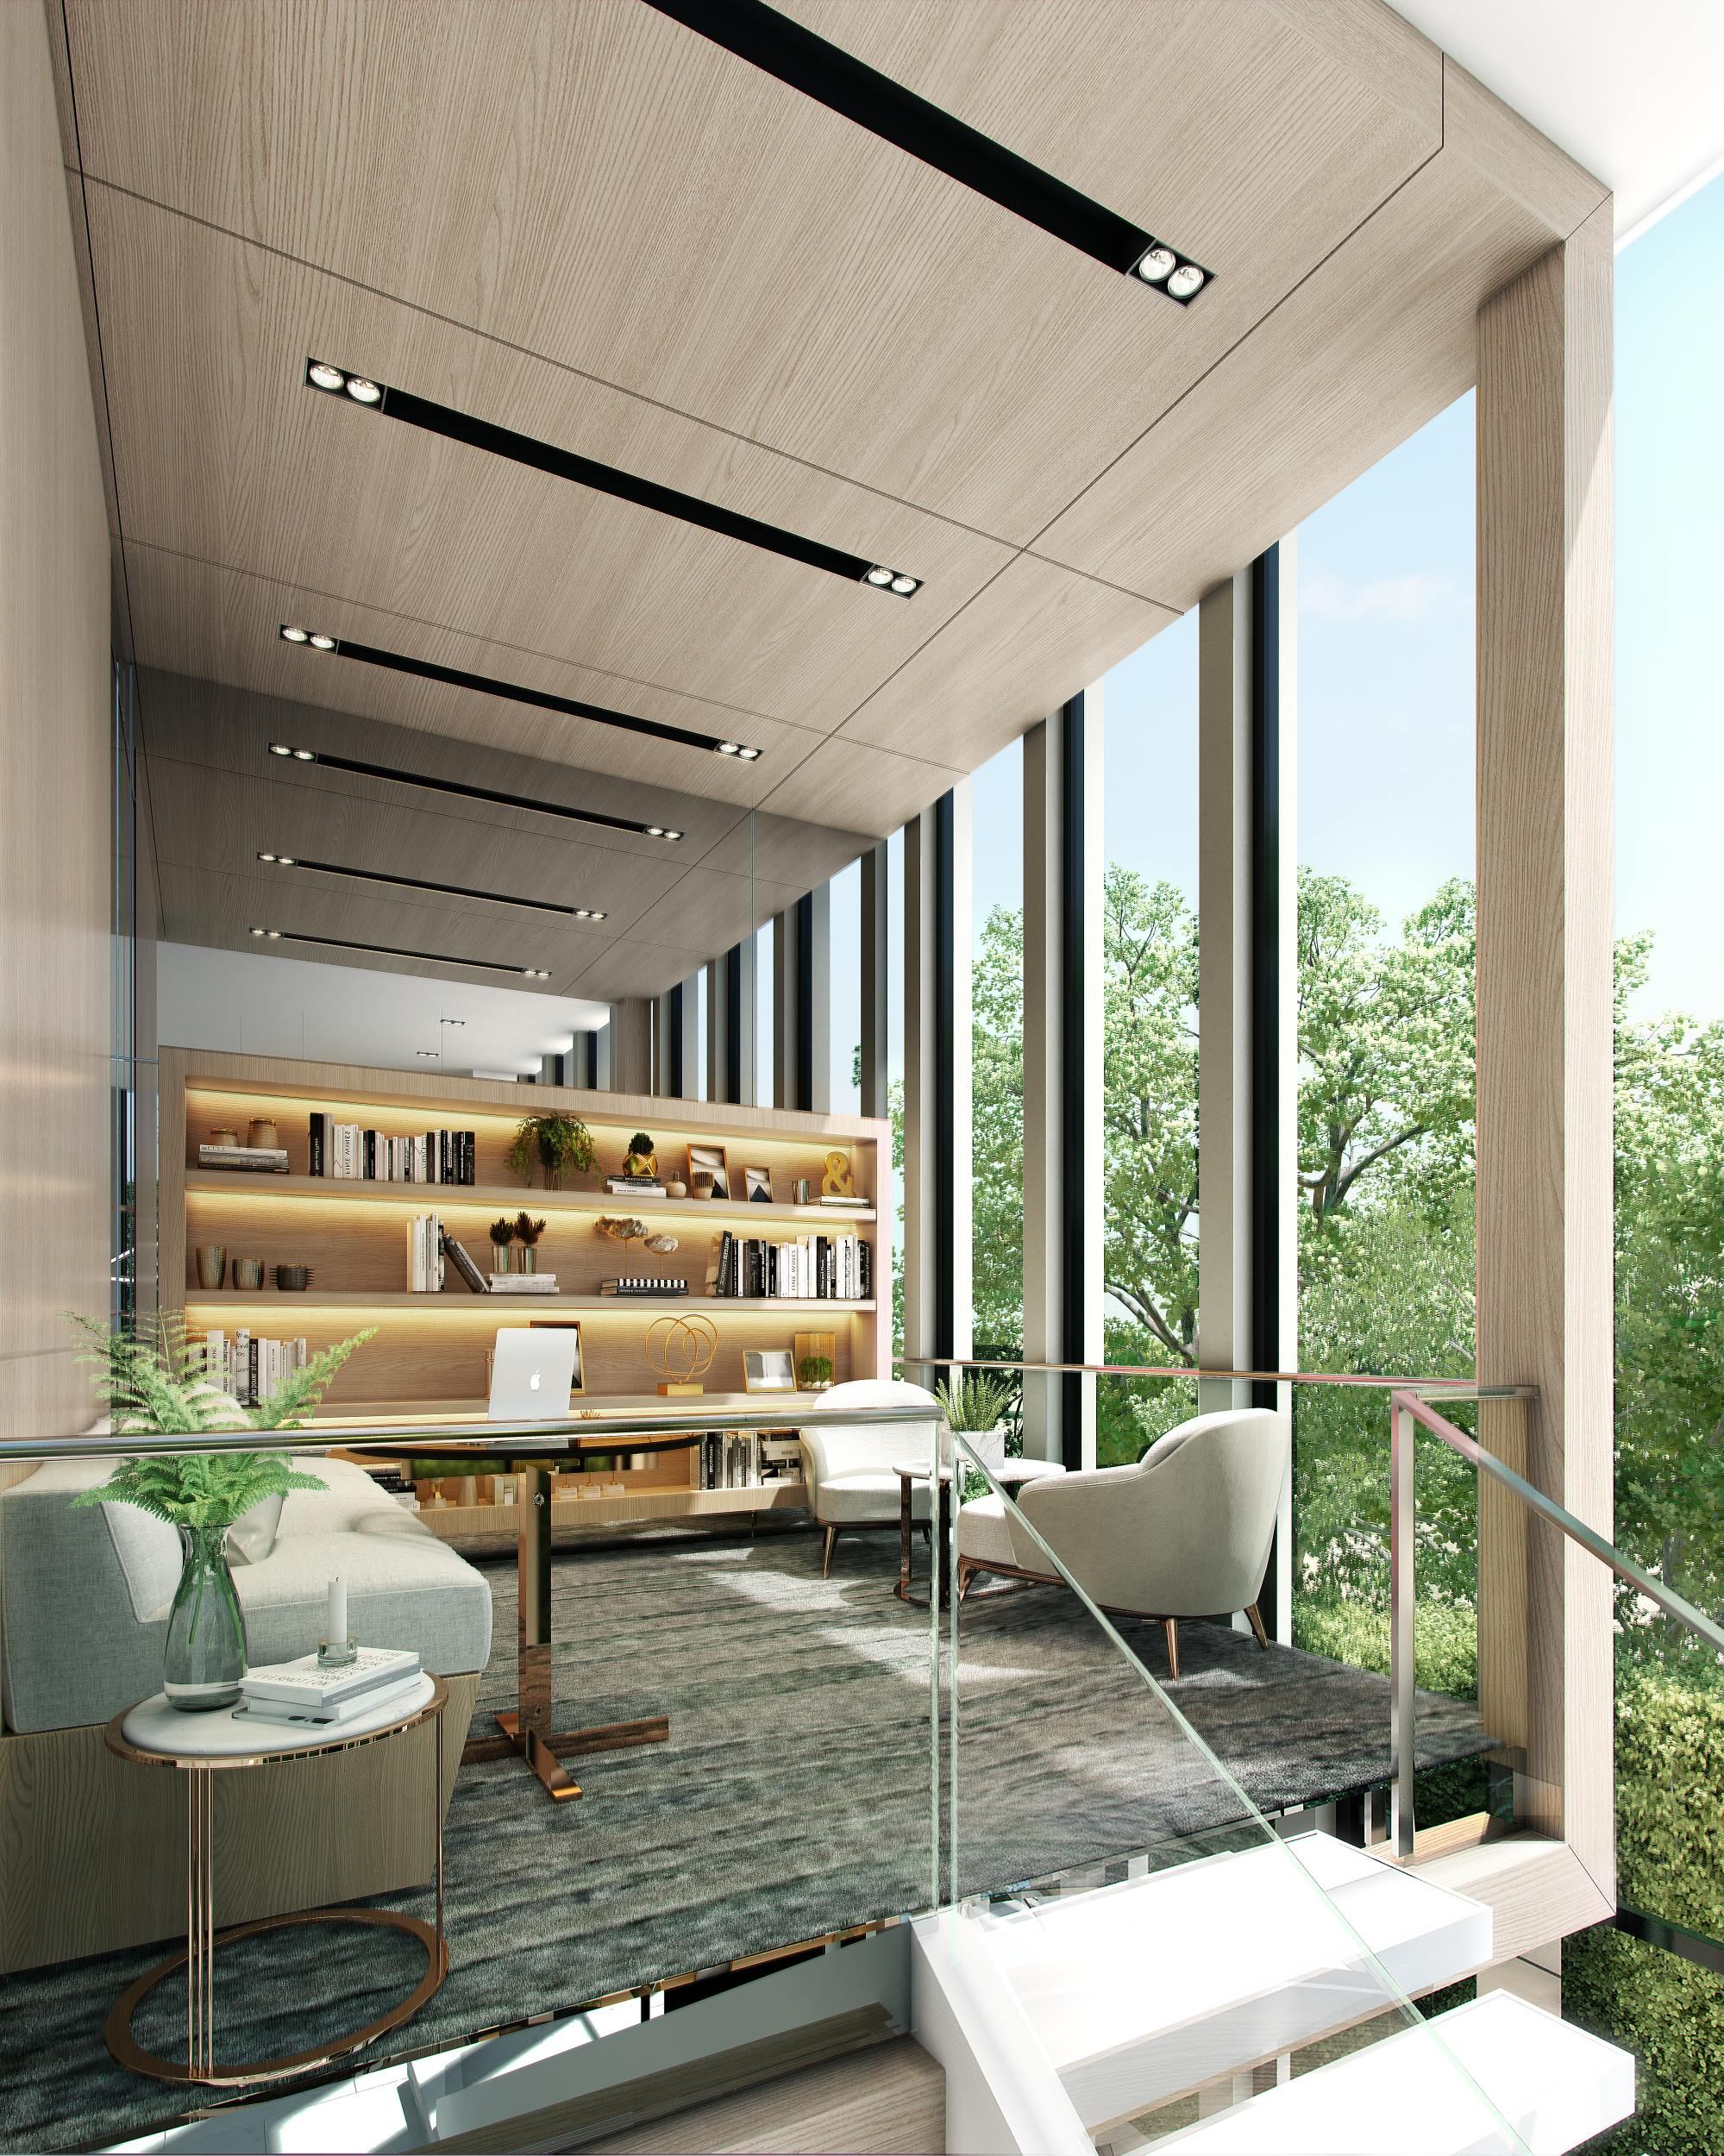 INT_Lobby_view_003_FINAL_Hi-res